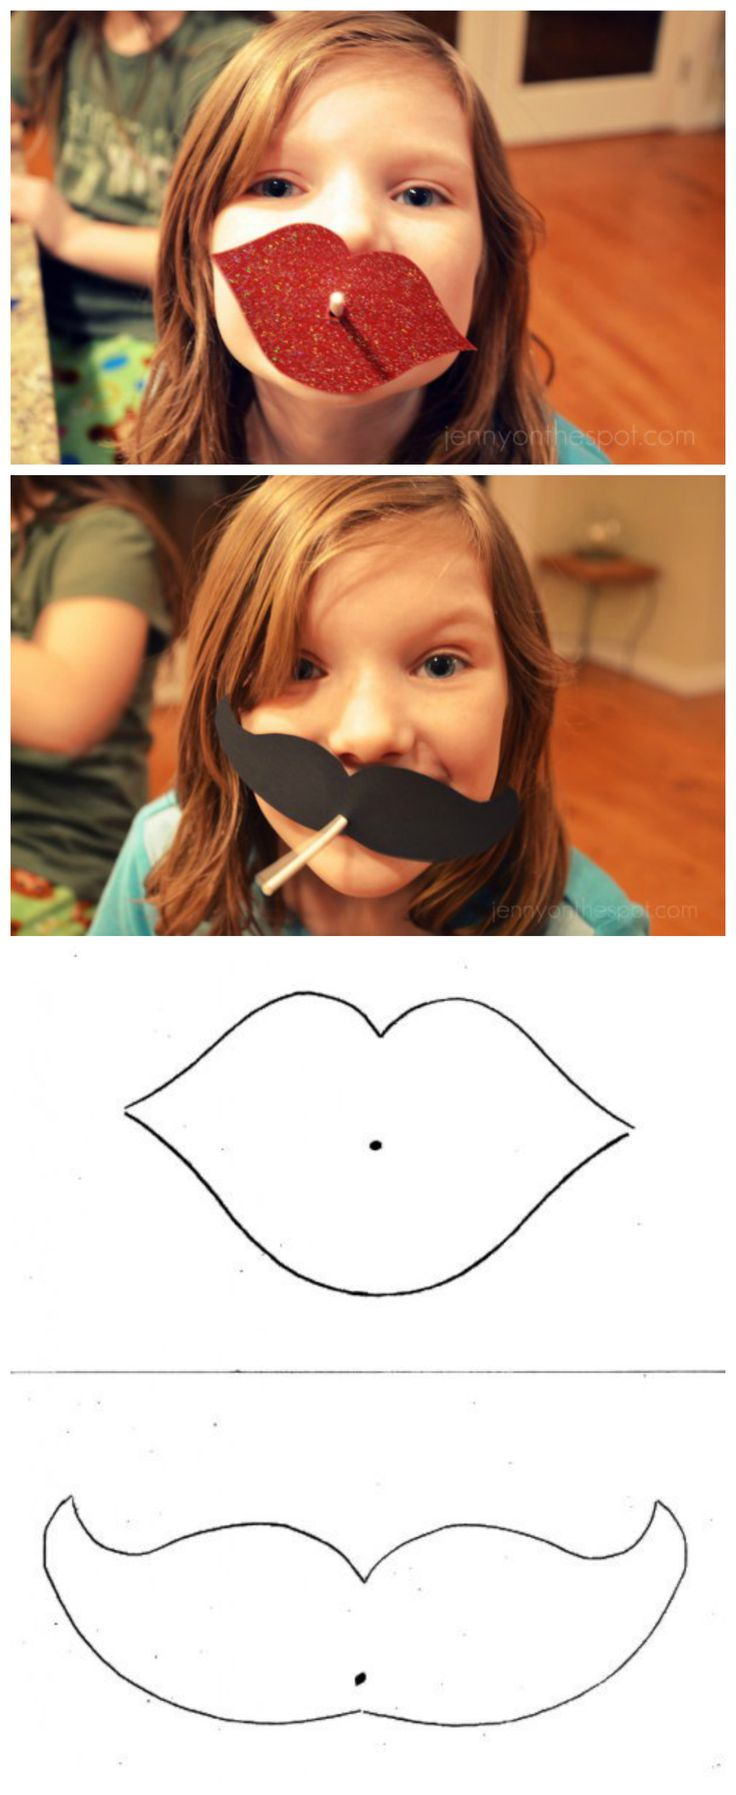 DIY lollipop Valentine lips & moustache!!! via @Jenny On The Spot